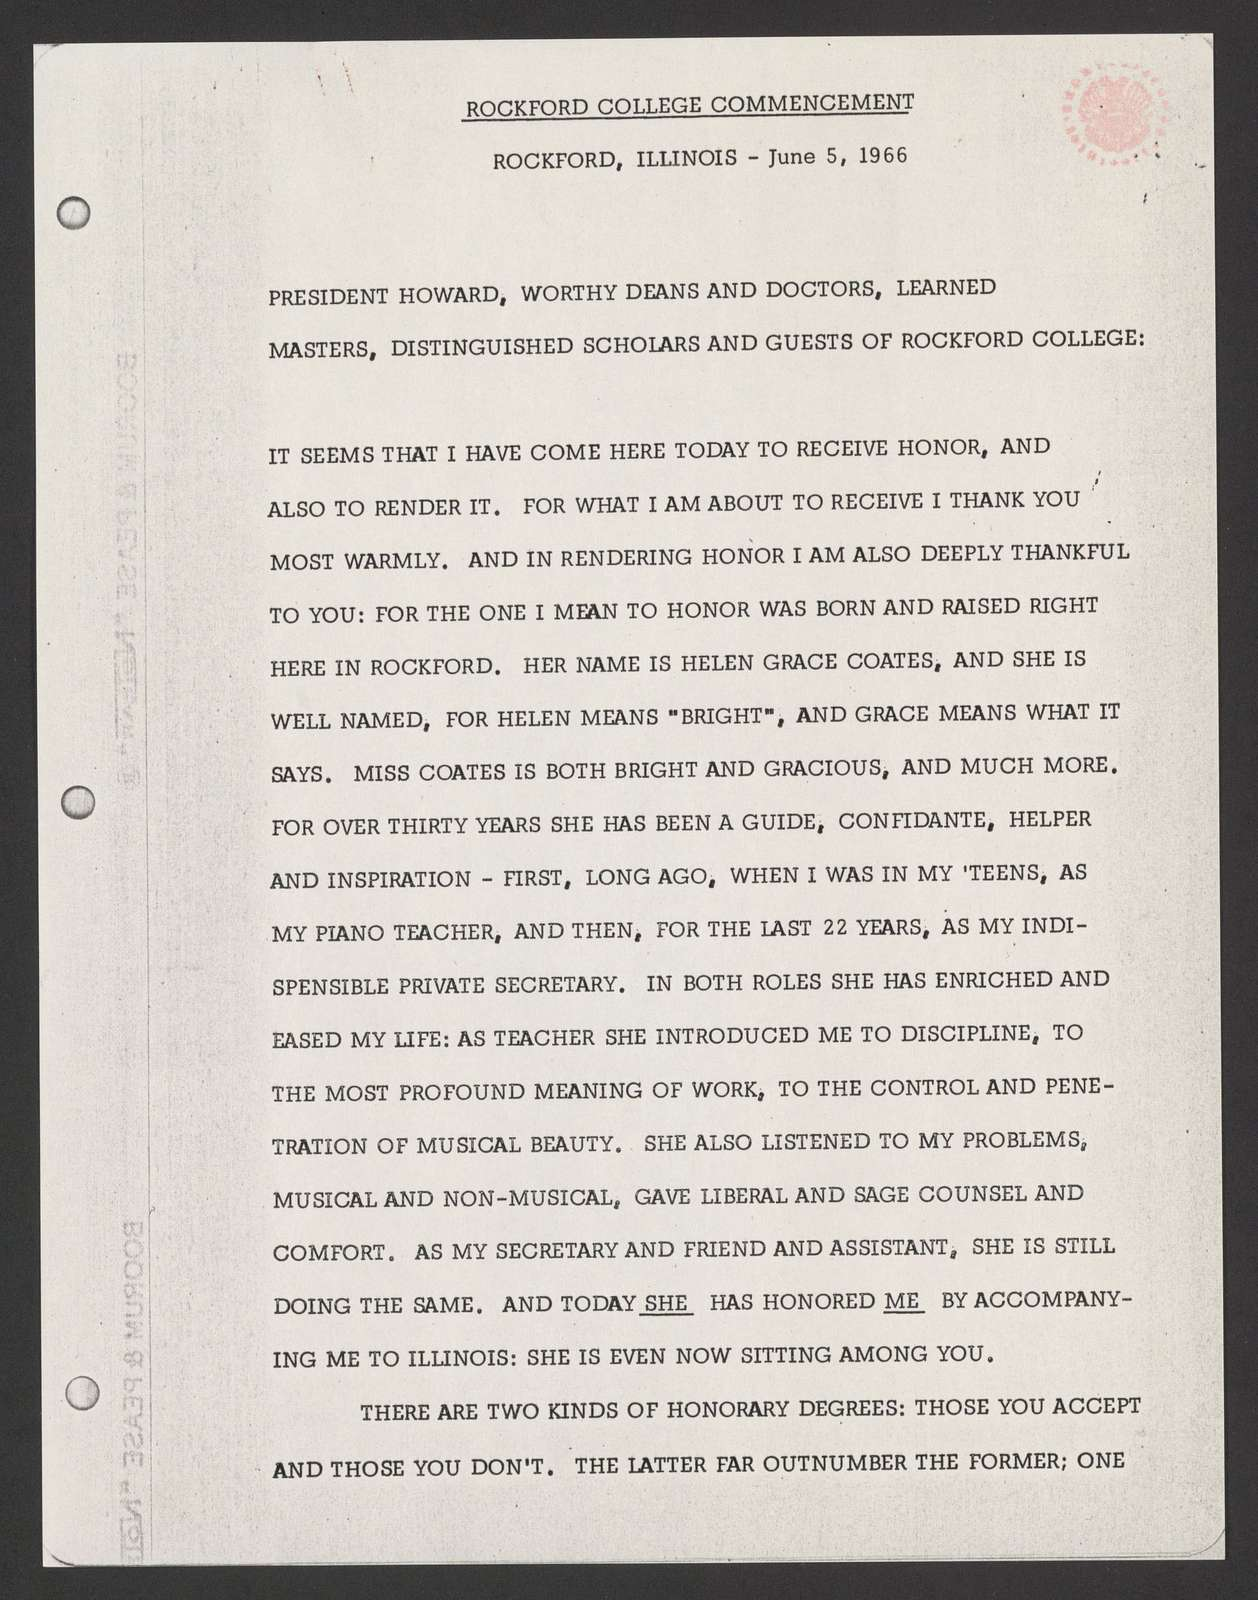 commencement address (including homage to Helen Coates), Rockford College, 1966 June 4